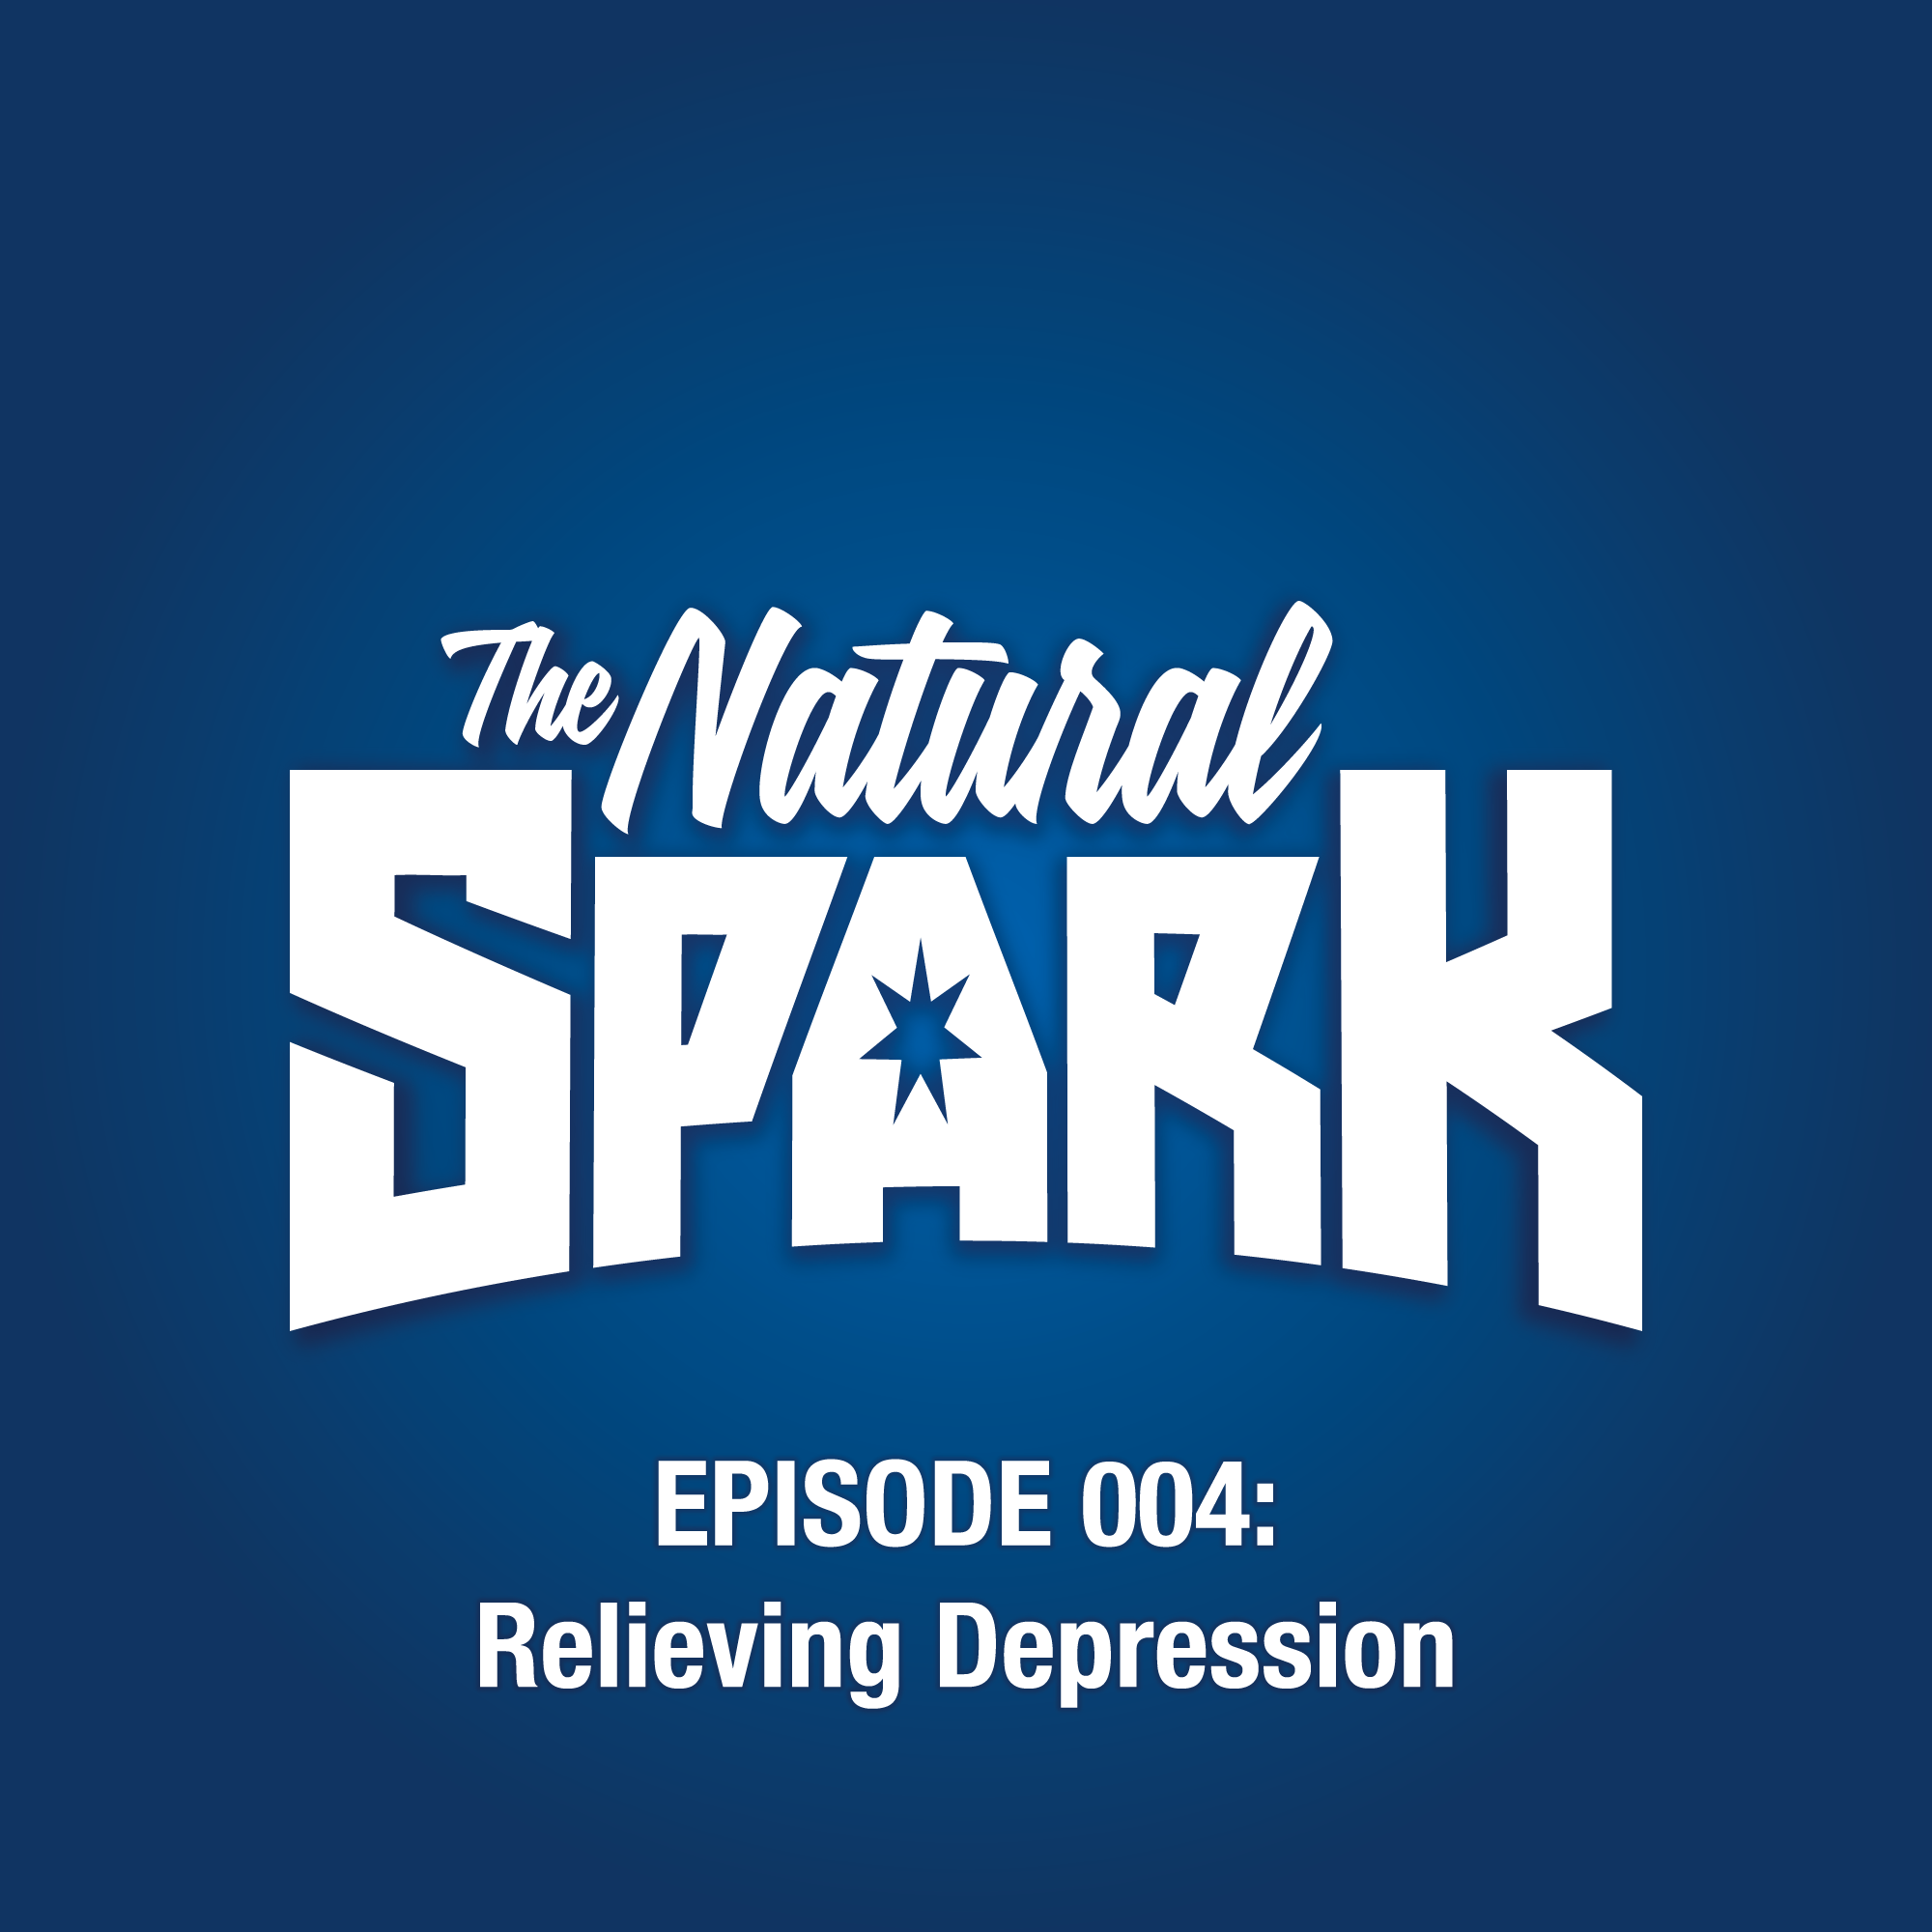 The Natural Spark - Episode 004: Relieving Depression